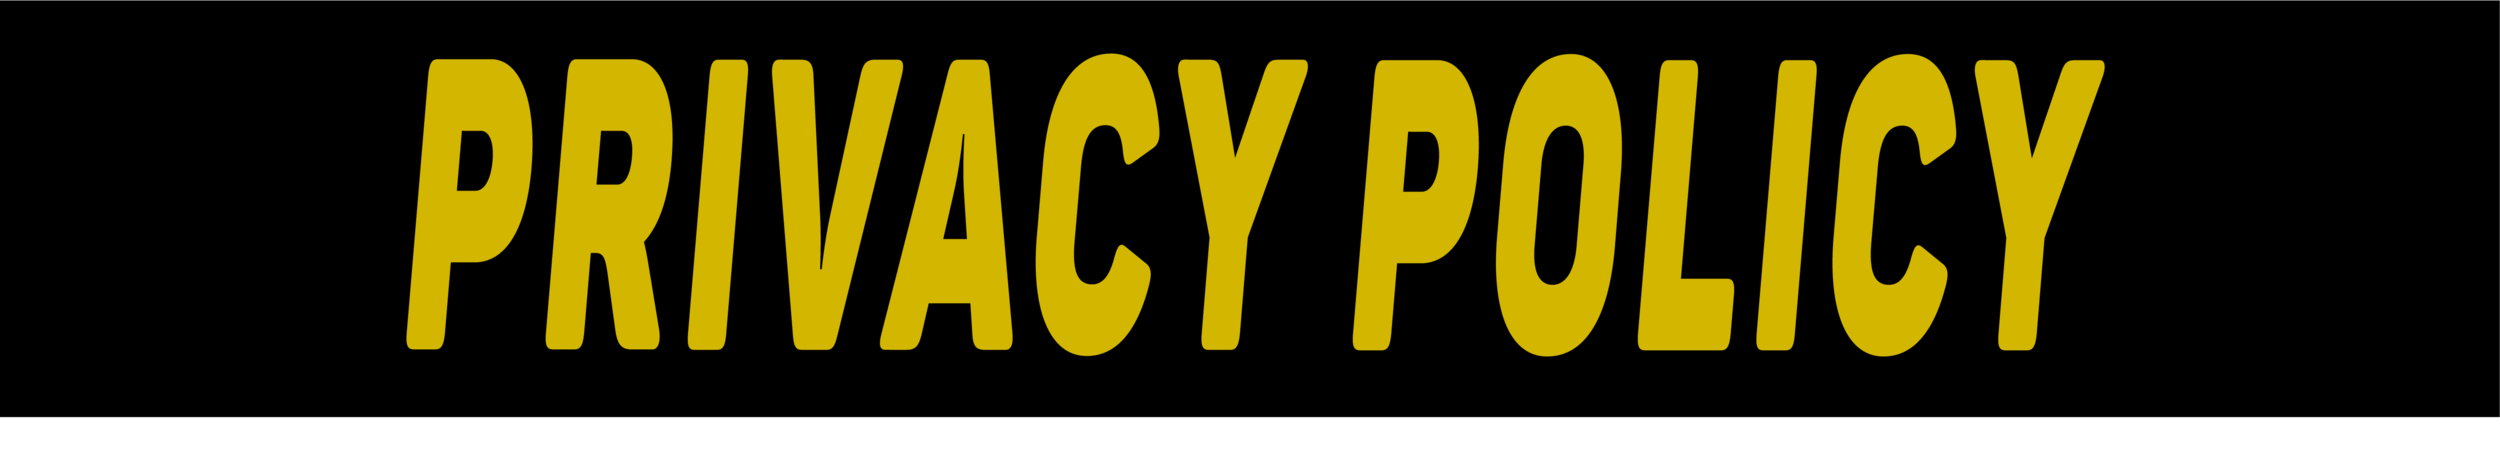 PrivacyPolicy_Producer.ly.png